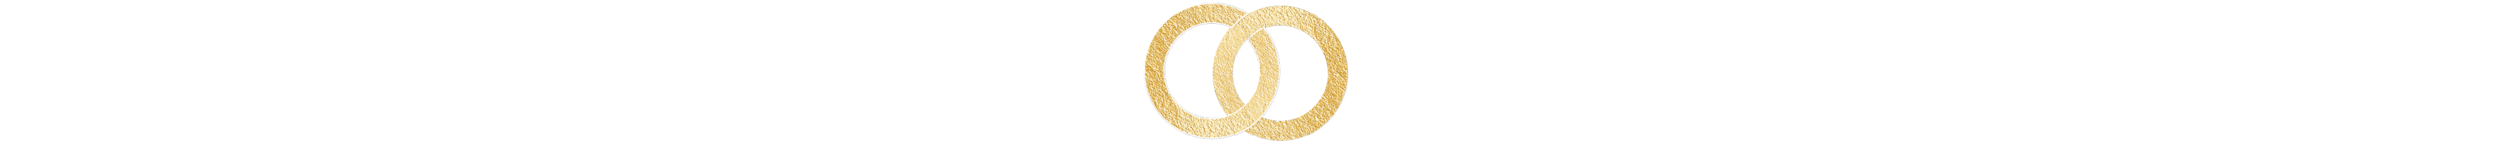 Website_Gold_Divider_Banner_Interlocking_Circles copy.png